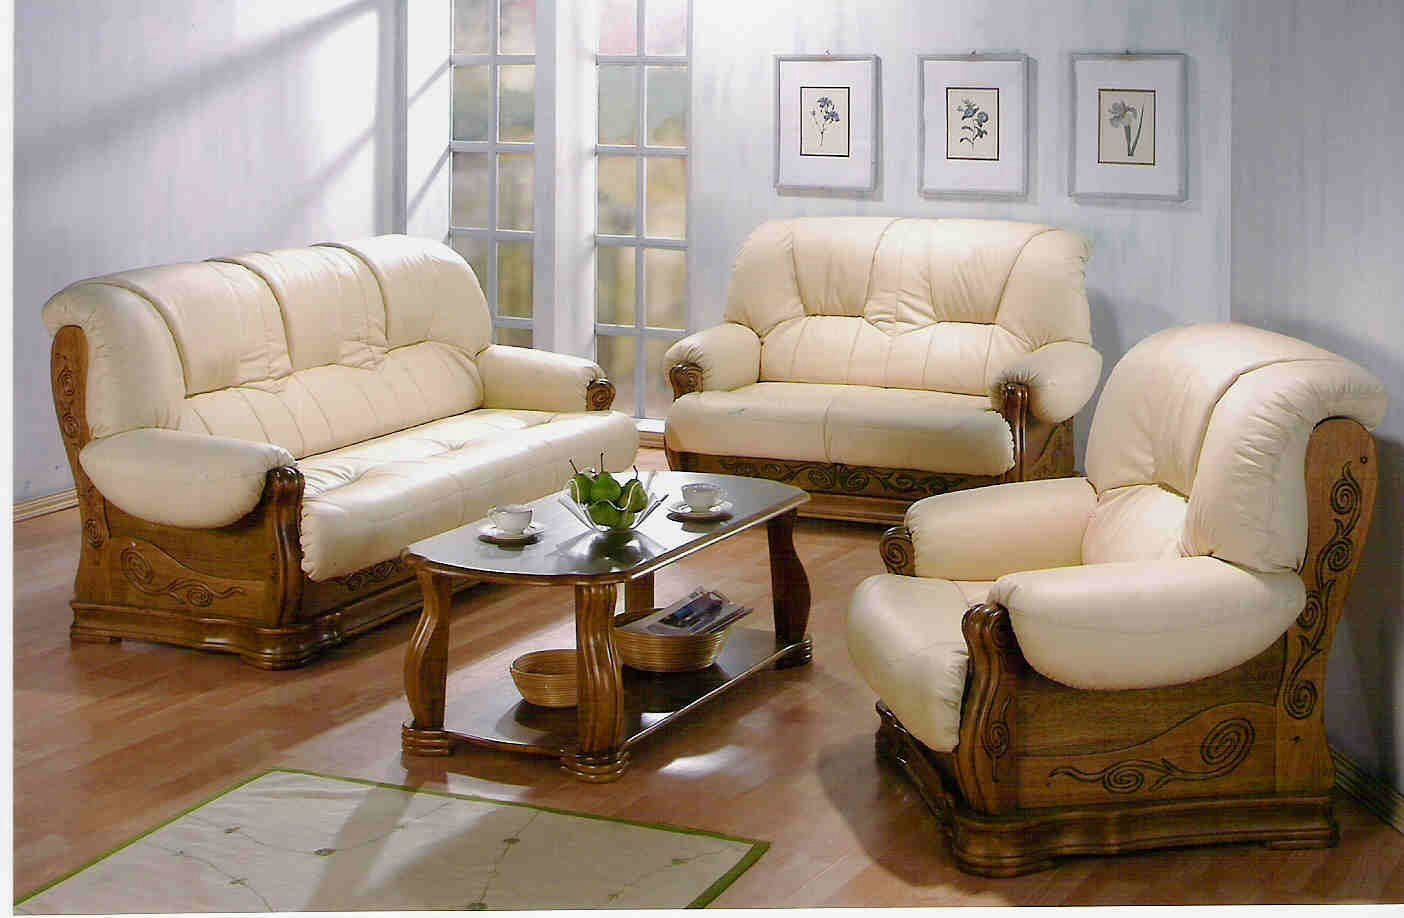 latest cheap sofas online online-Stylish Cheap sofas Online Wallpaper